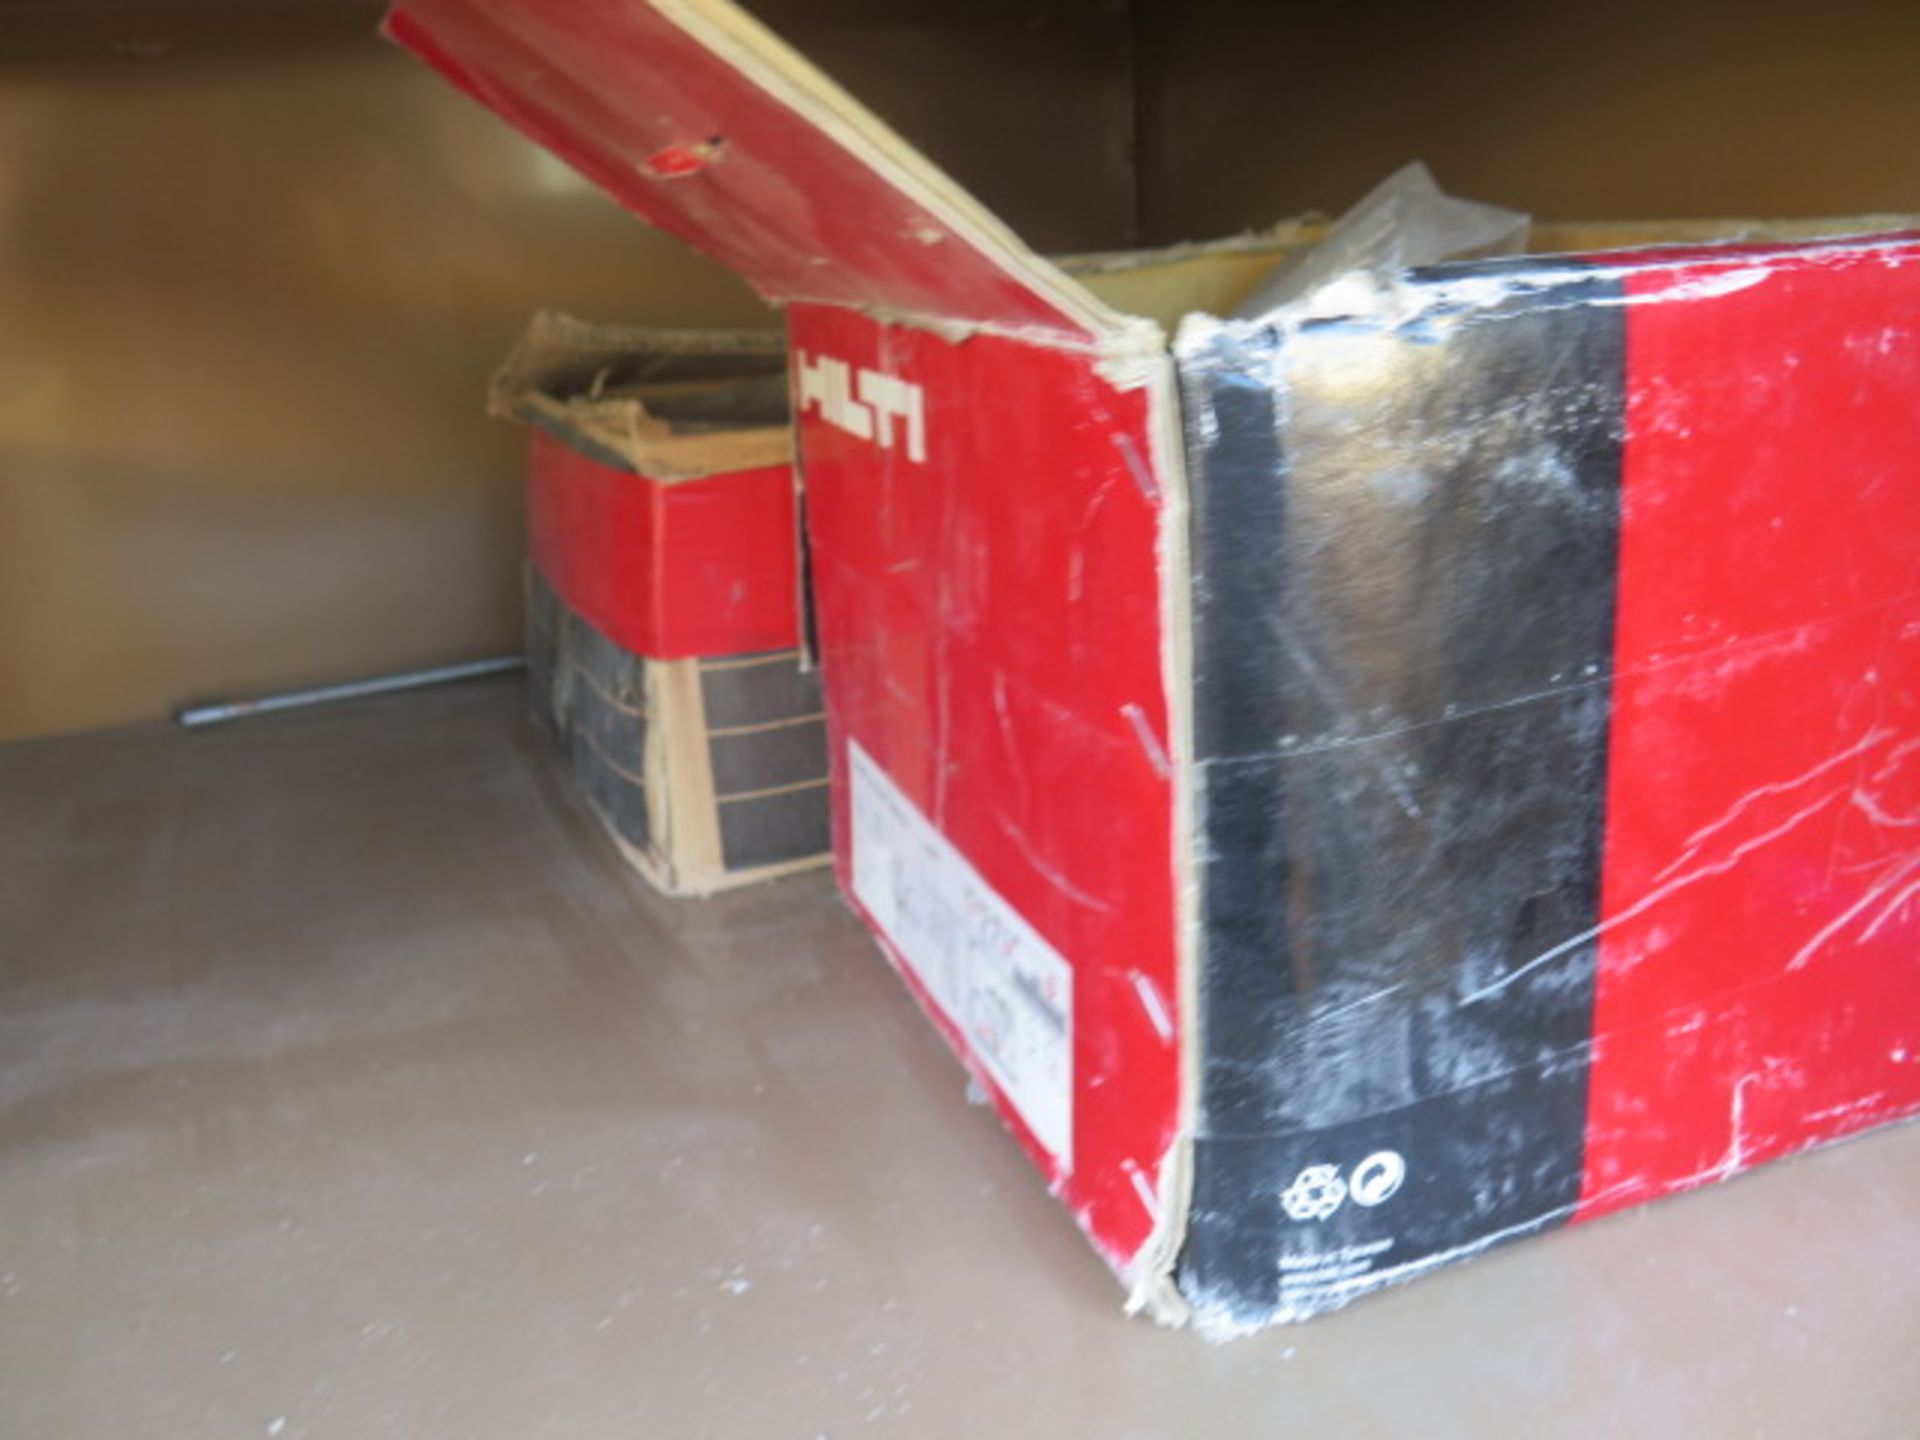 Knaack mdl. 139 Jobmaster Rolling Job Boxw/ Hardware and Supplies (SOLD AS-IS - NO WARRANTY) - Image 9 of 21